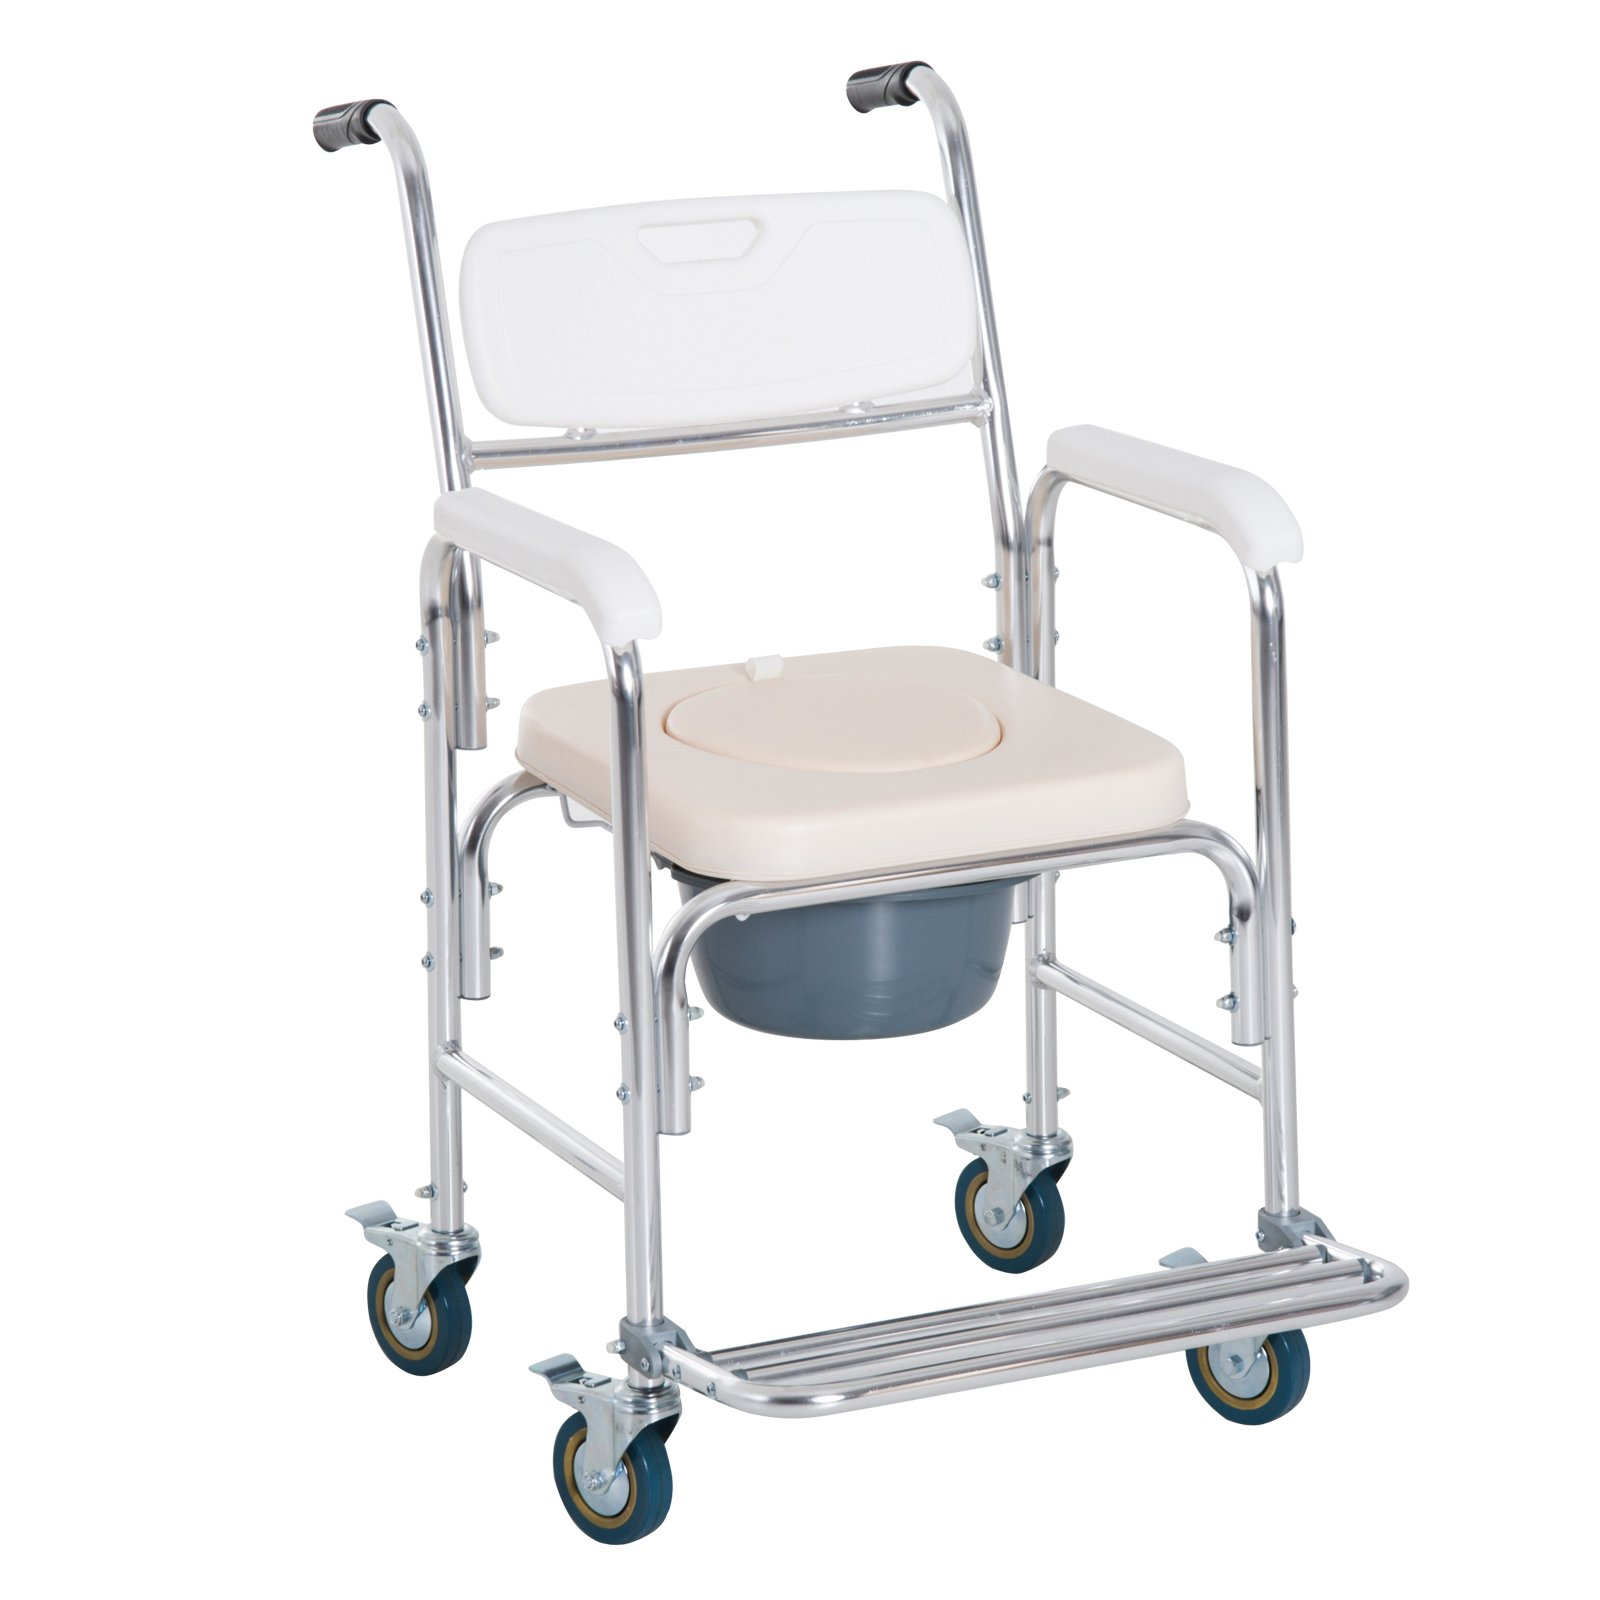 HomCom Personal Mobility Durable Waterproof Shower Accessible Transport Commode Medical Rolling Chair by HOMCOM